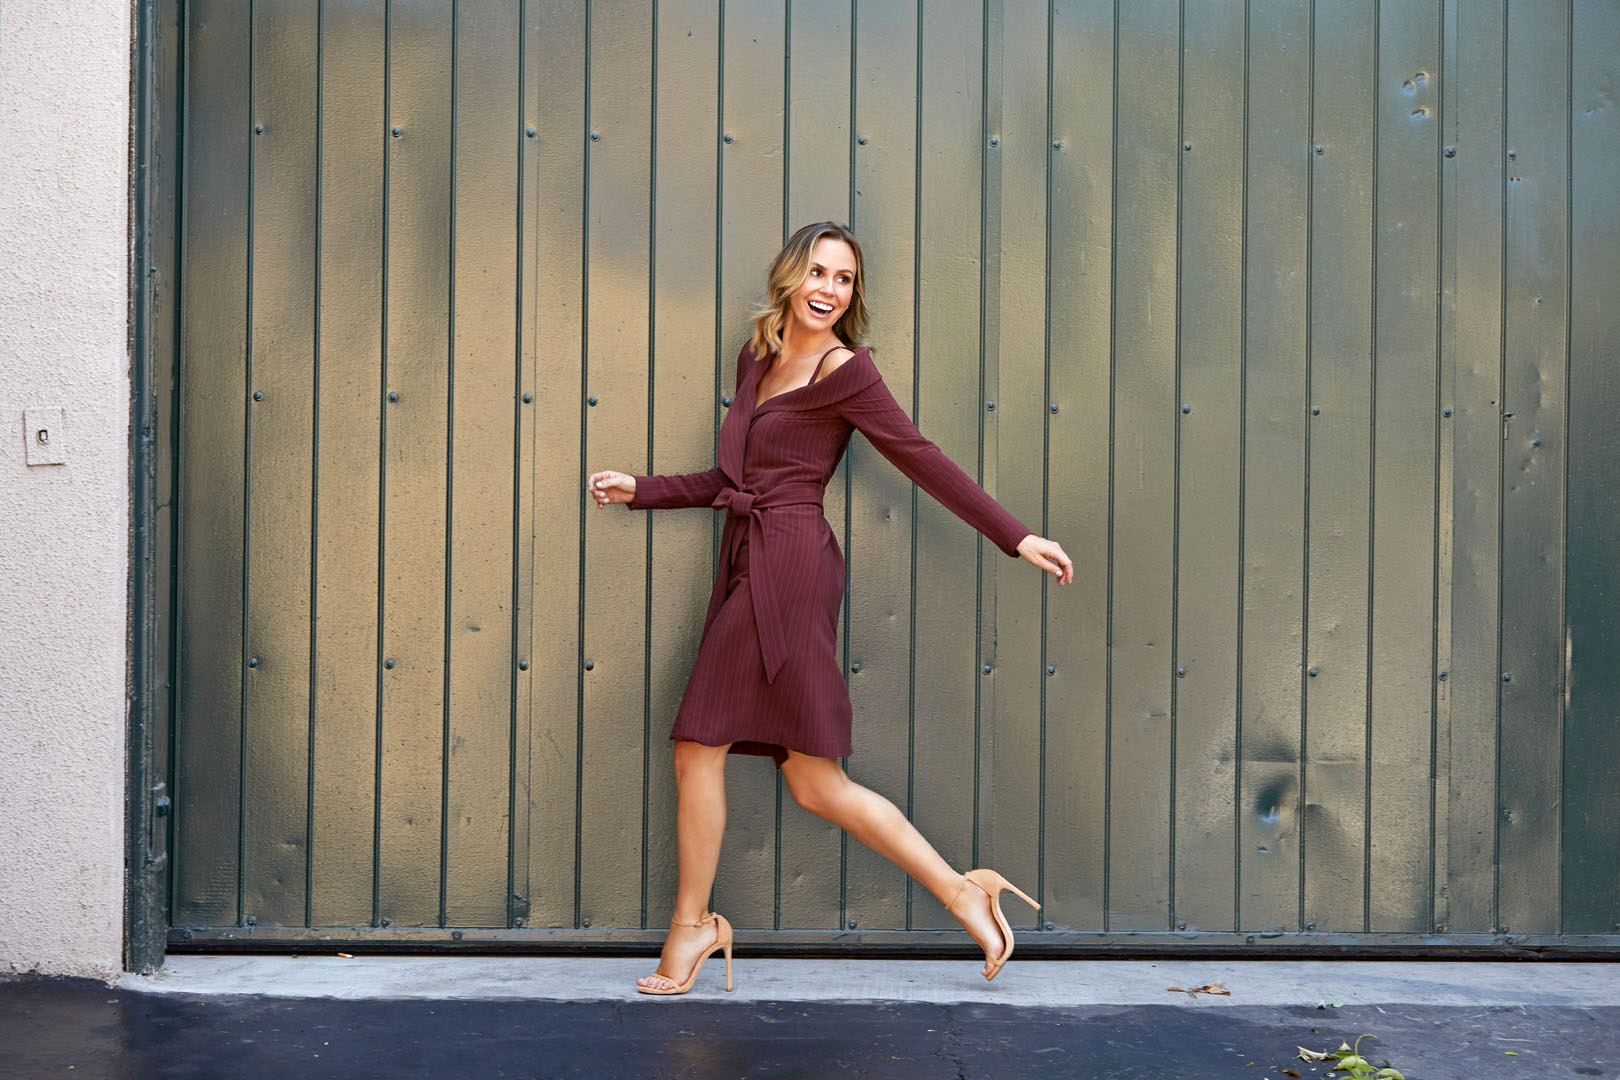 Poise and personality are no problem for Keltie Knight